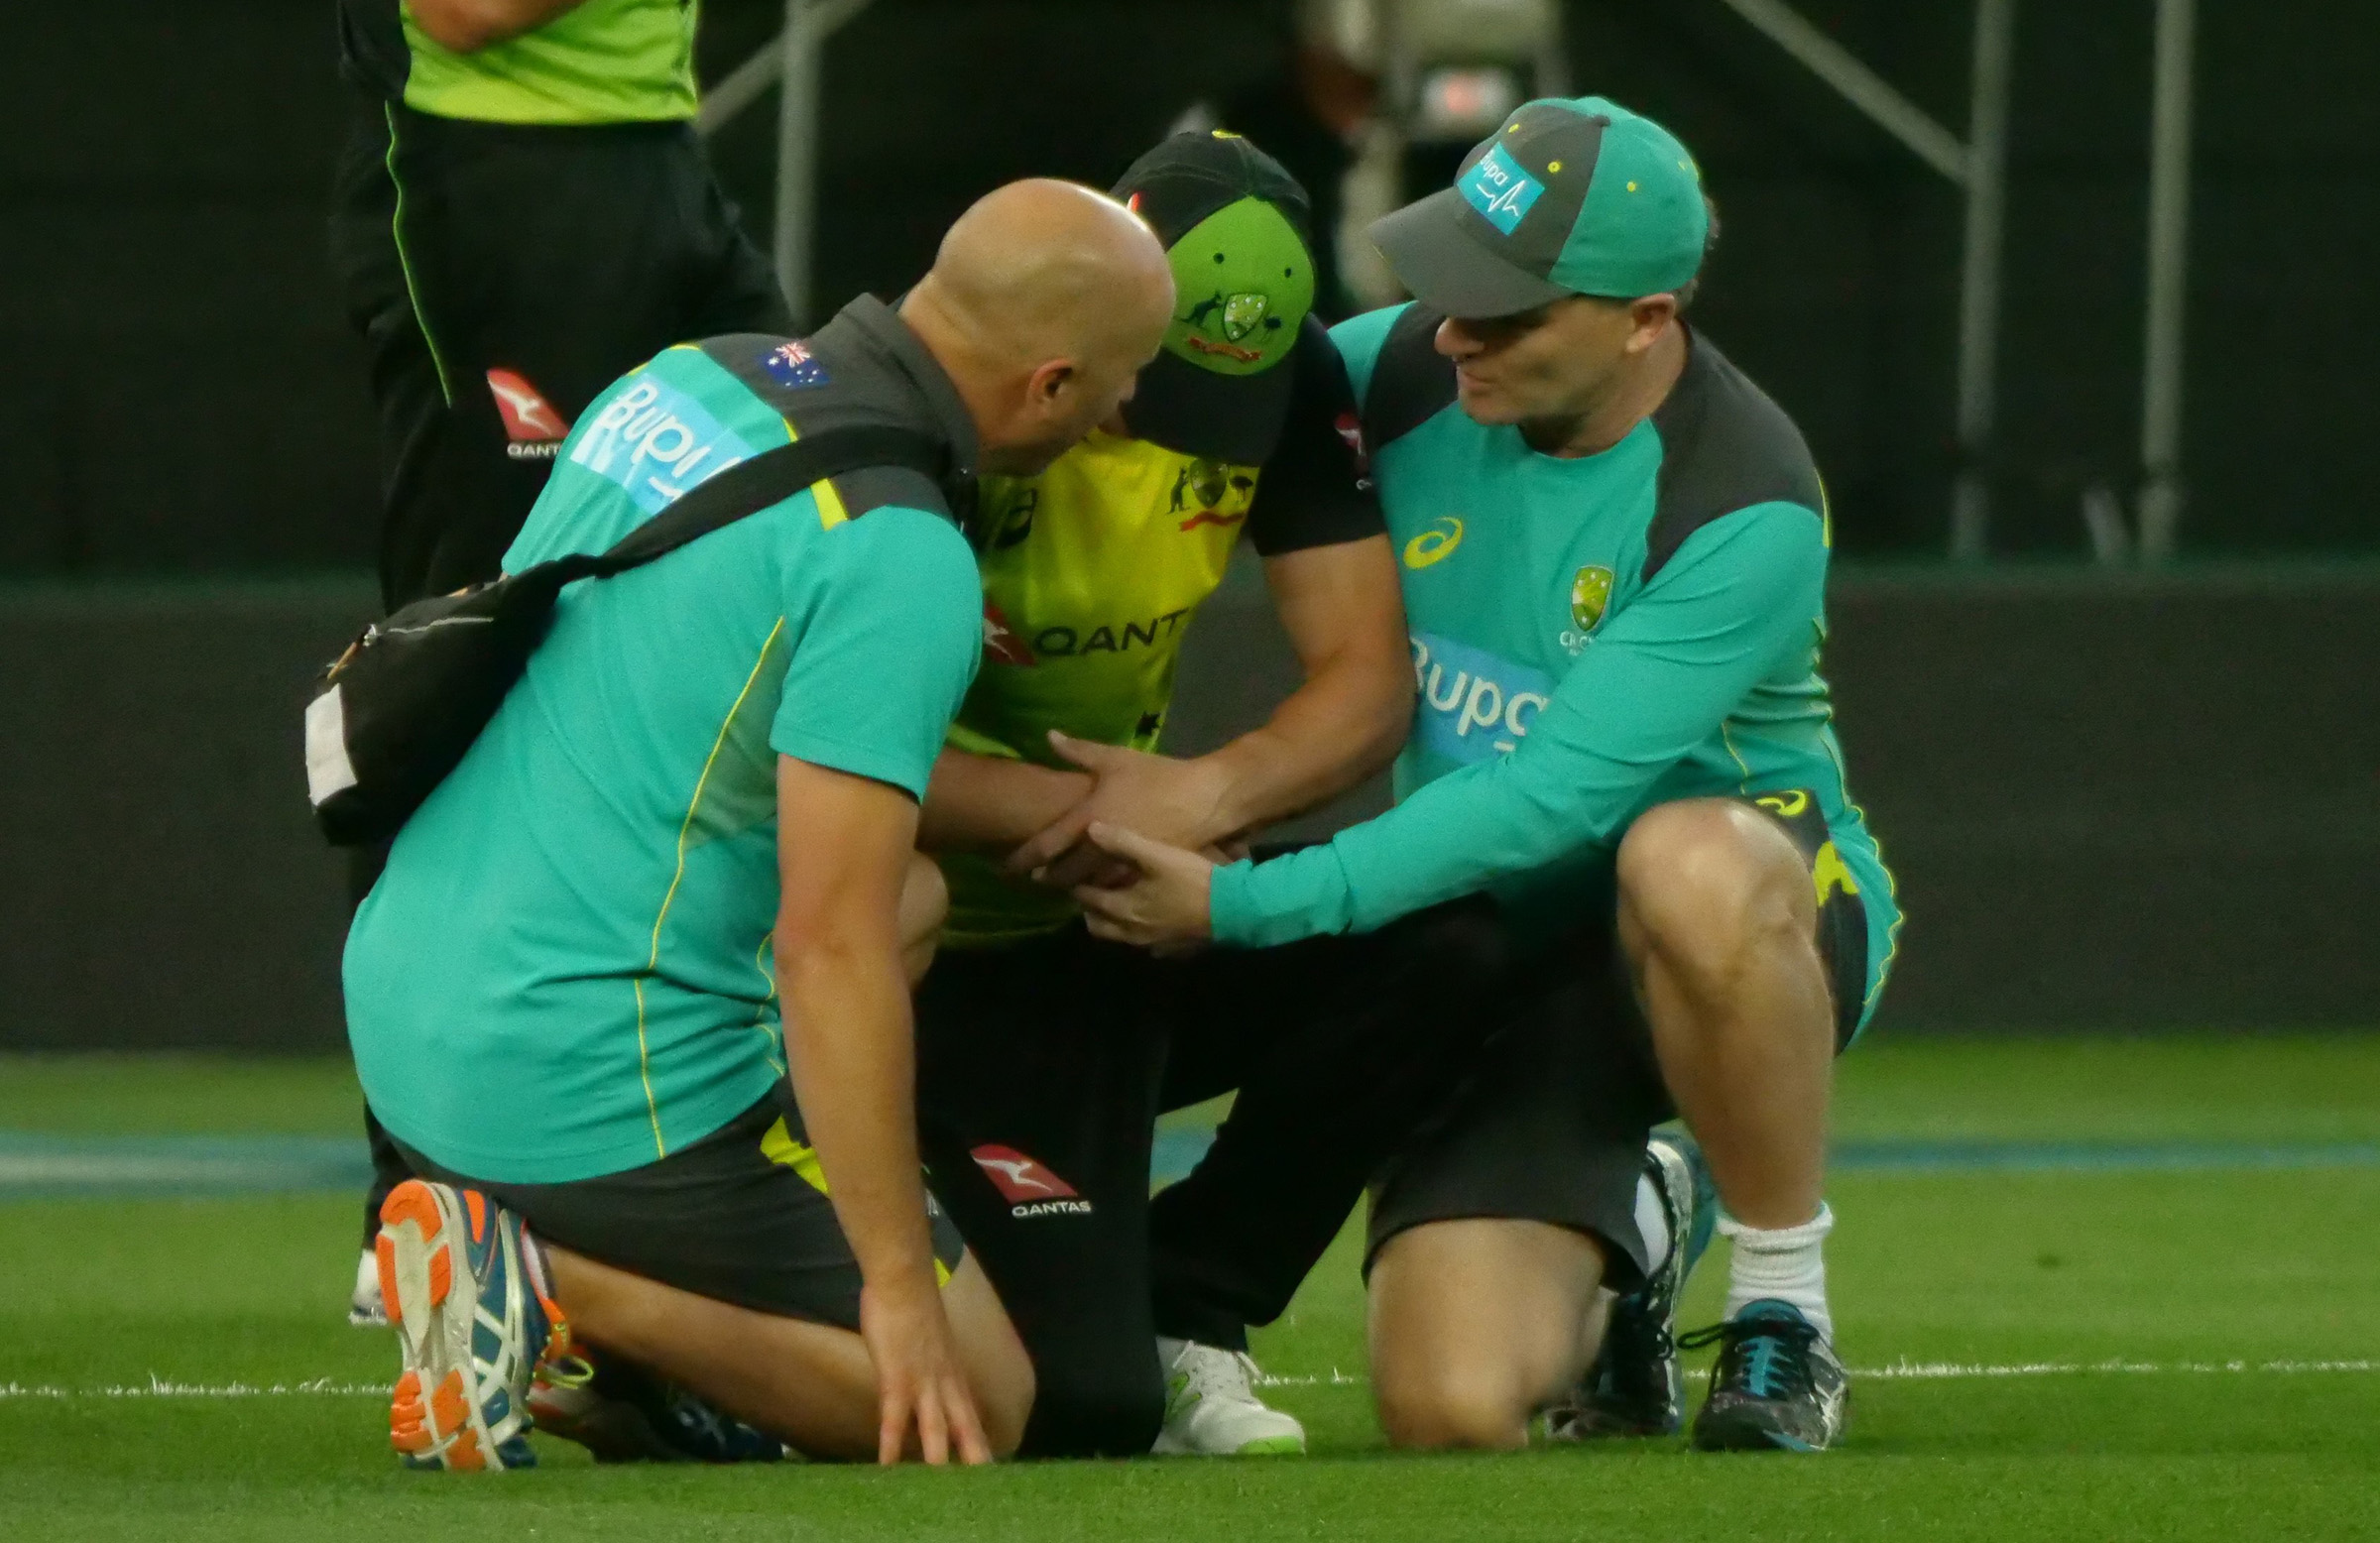 Lynn in the hands of medical staff // cricket.com.au